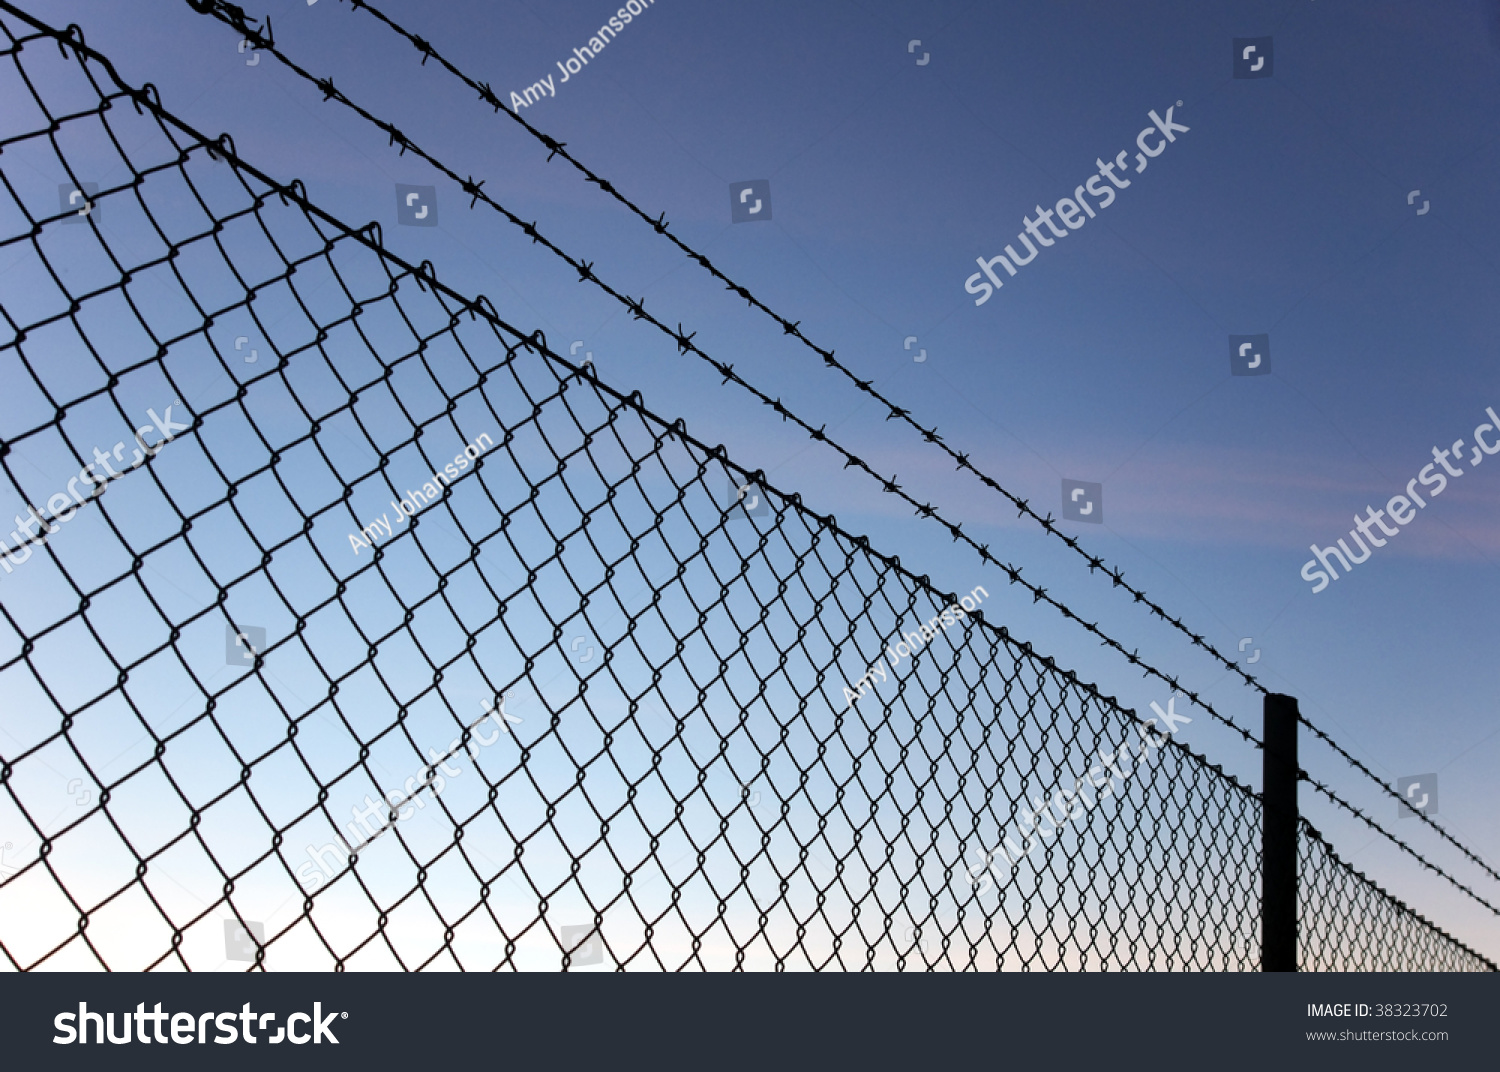 Chain Link Fence Barbed Wire Against Stock Photo (Edit Now) 38323702 ...